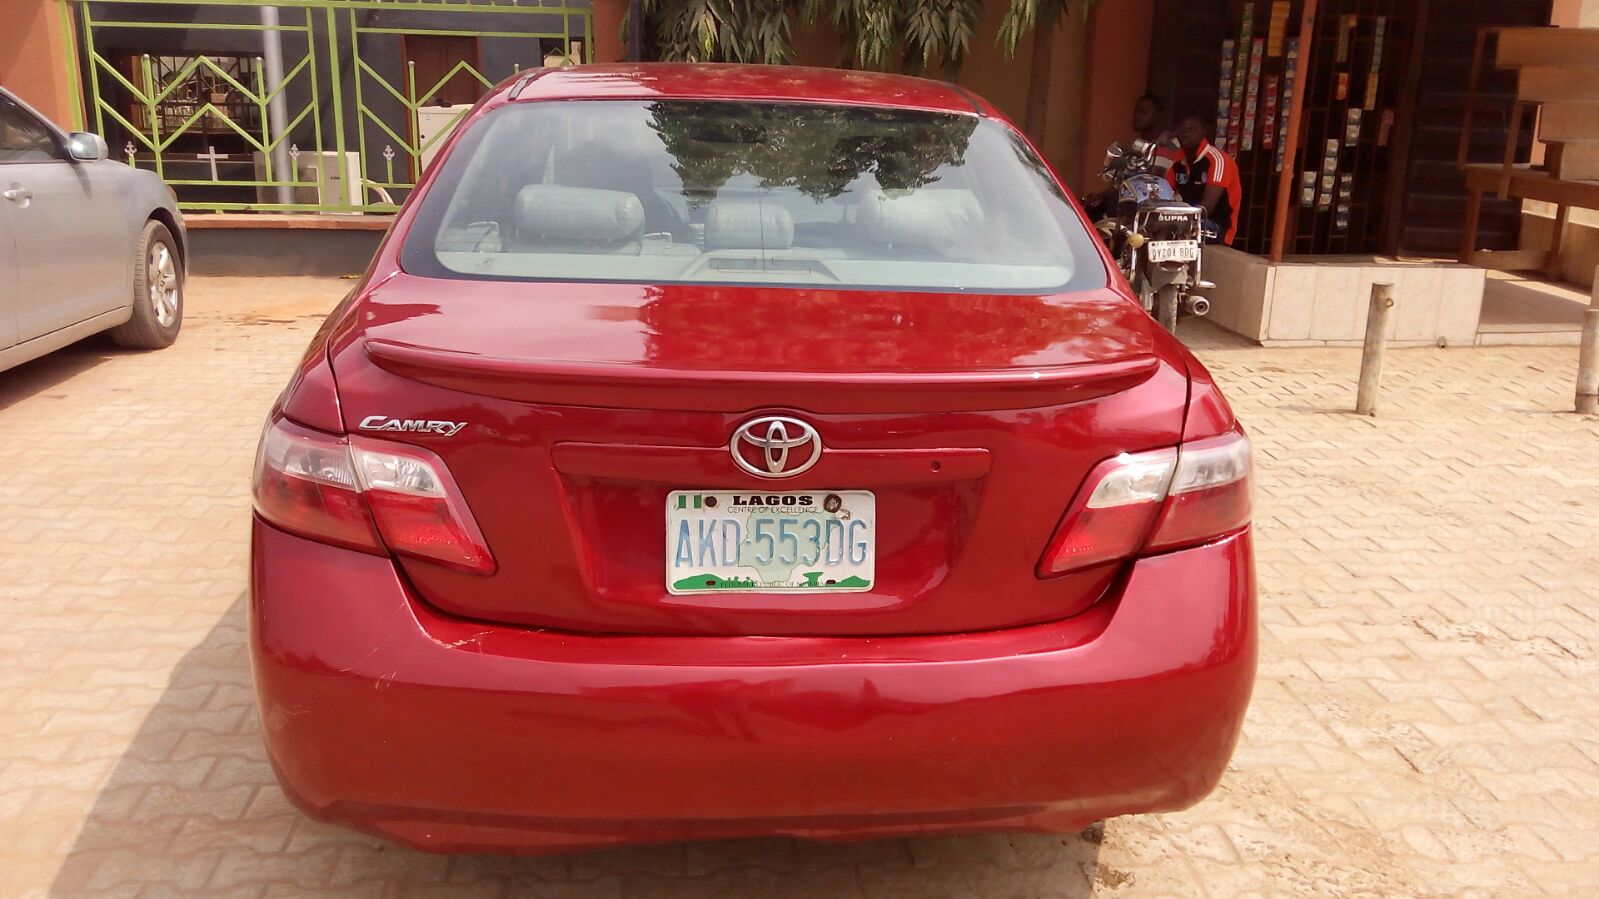 brand new toyota camry muscle all kijang innova 2.4 v a/t diesel lux registered for sale autos nigeria